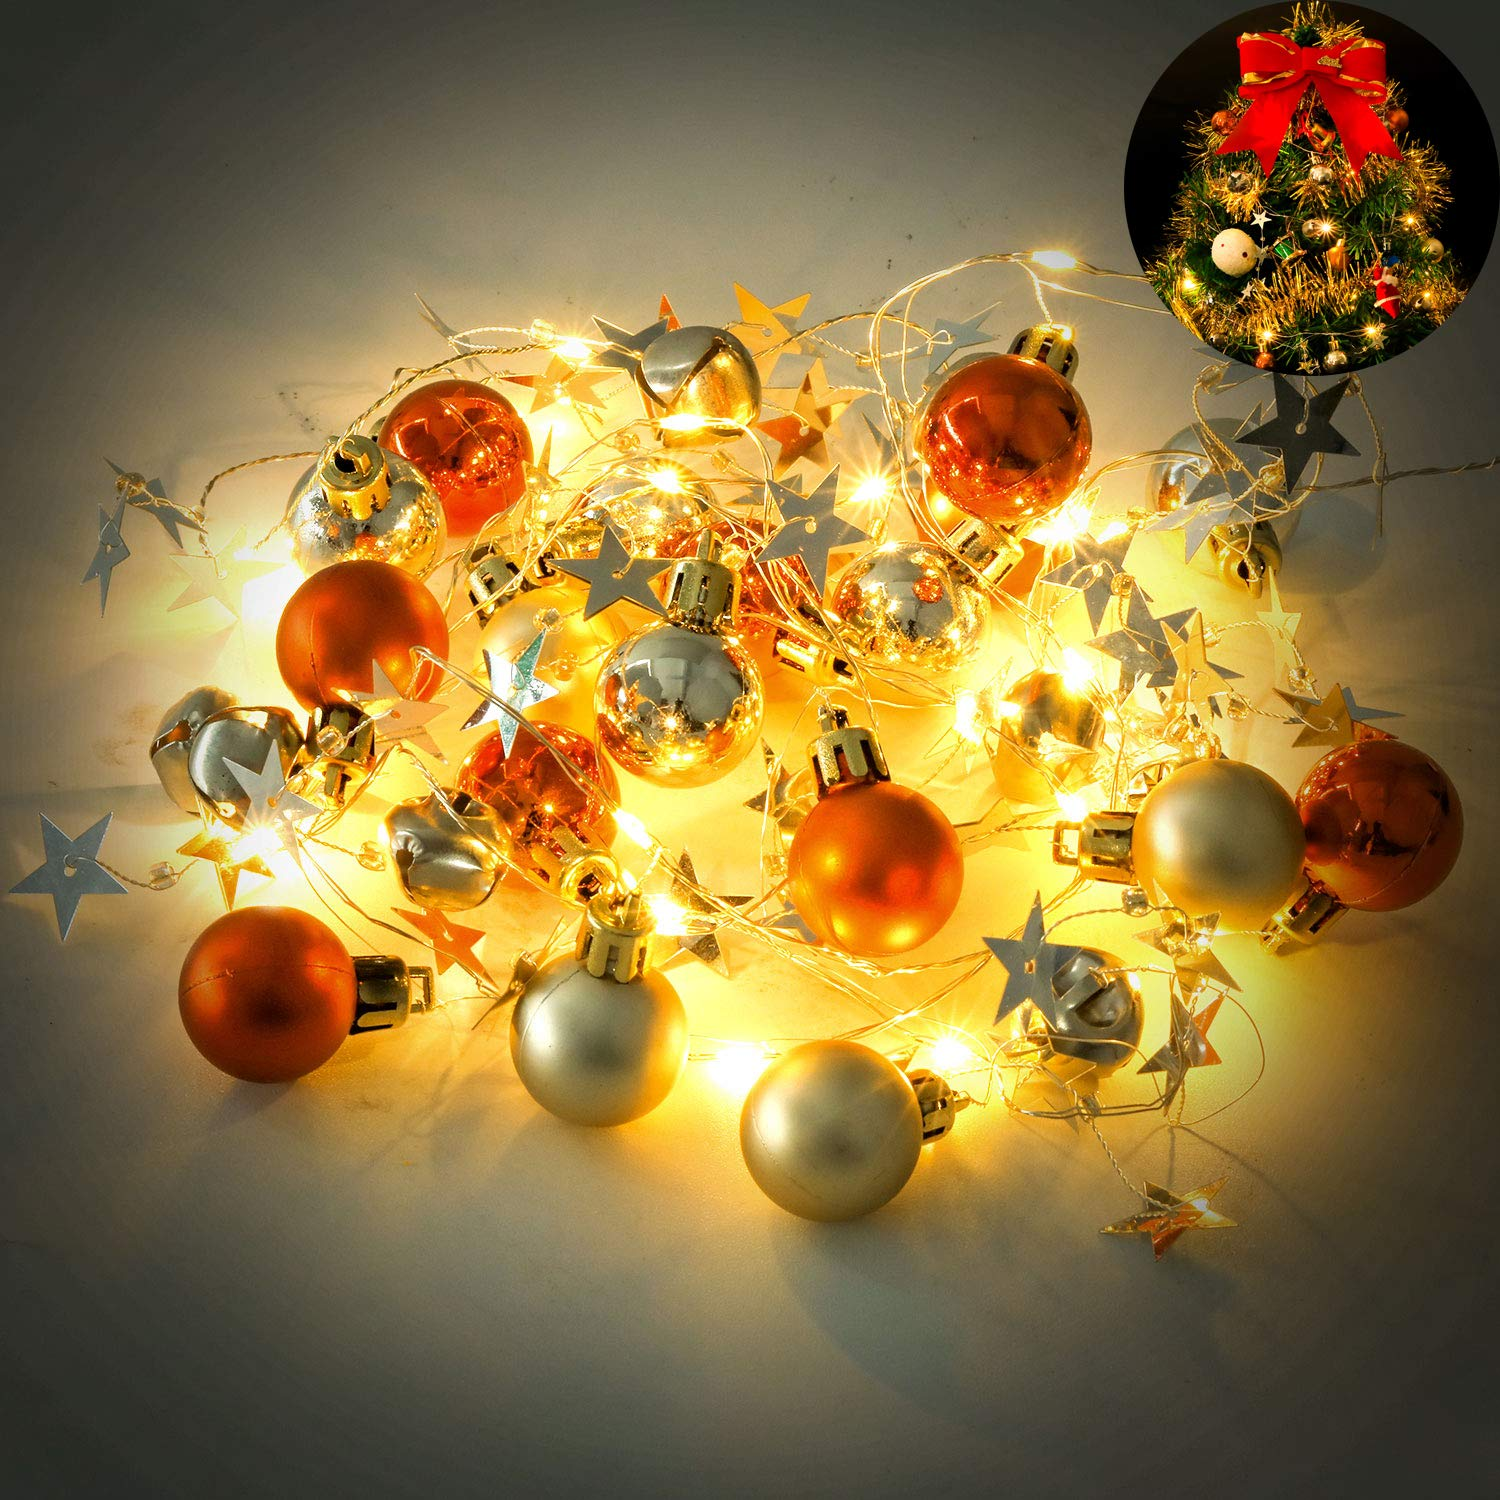 JUSTDOLIFE Christmas Garland with Lights, 6.5FT 20 LED Battery Operated Xmas Ball Bell Decor Garland